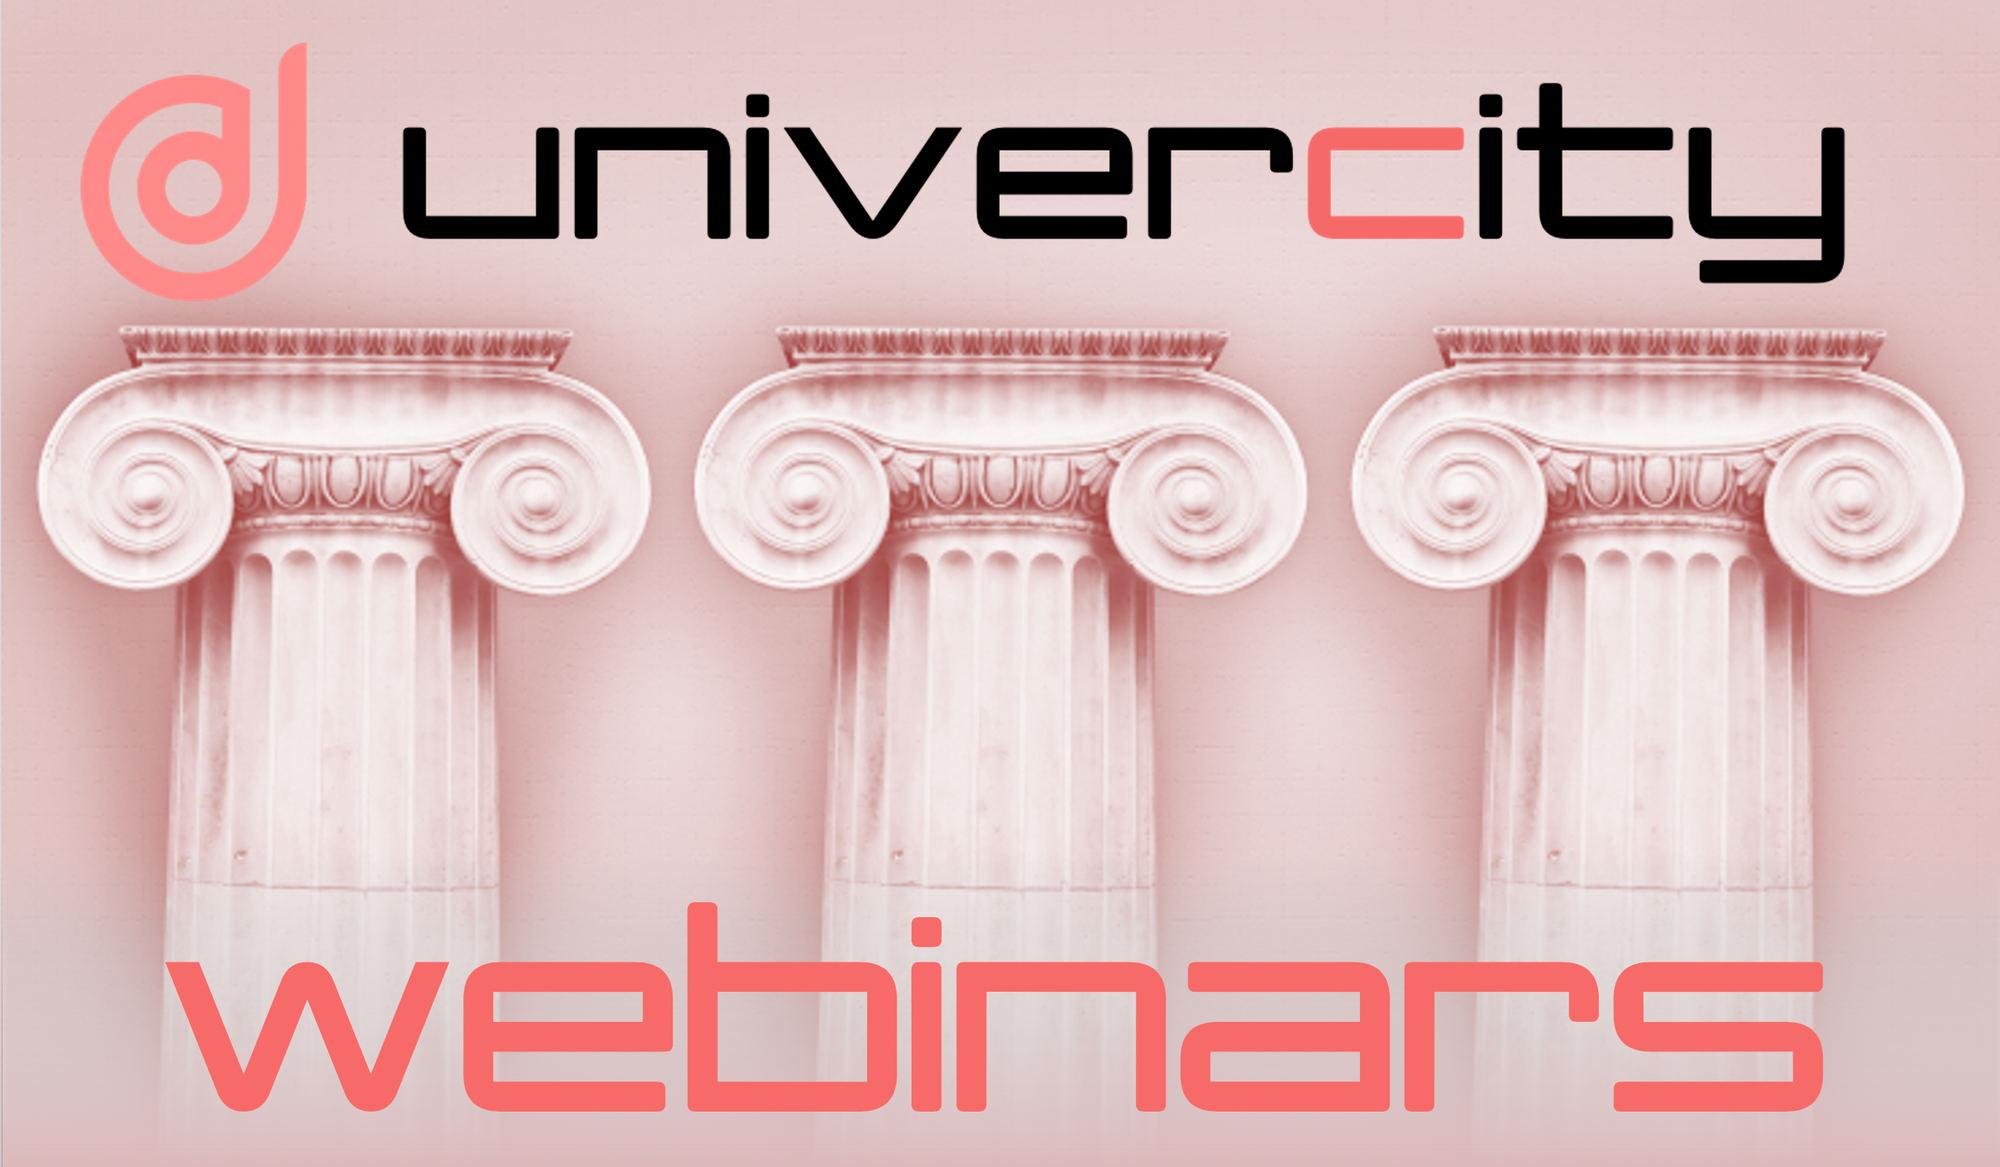 UniverCity webinars make it easy to use geospatial data for civic innovation